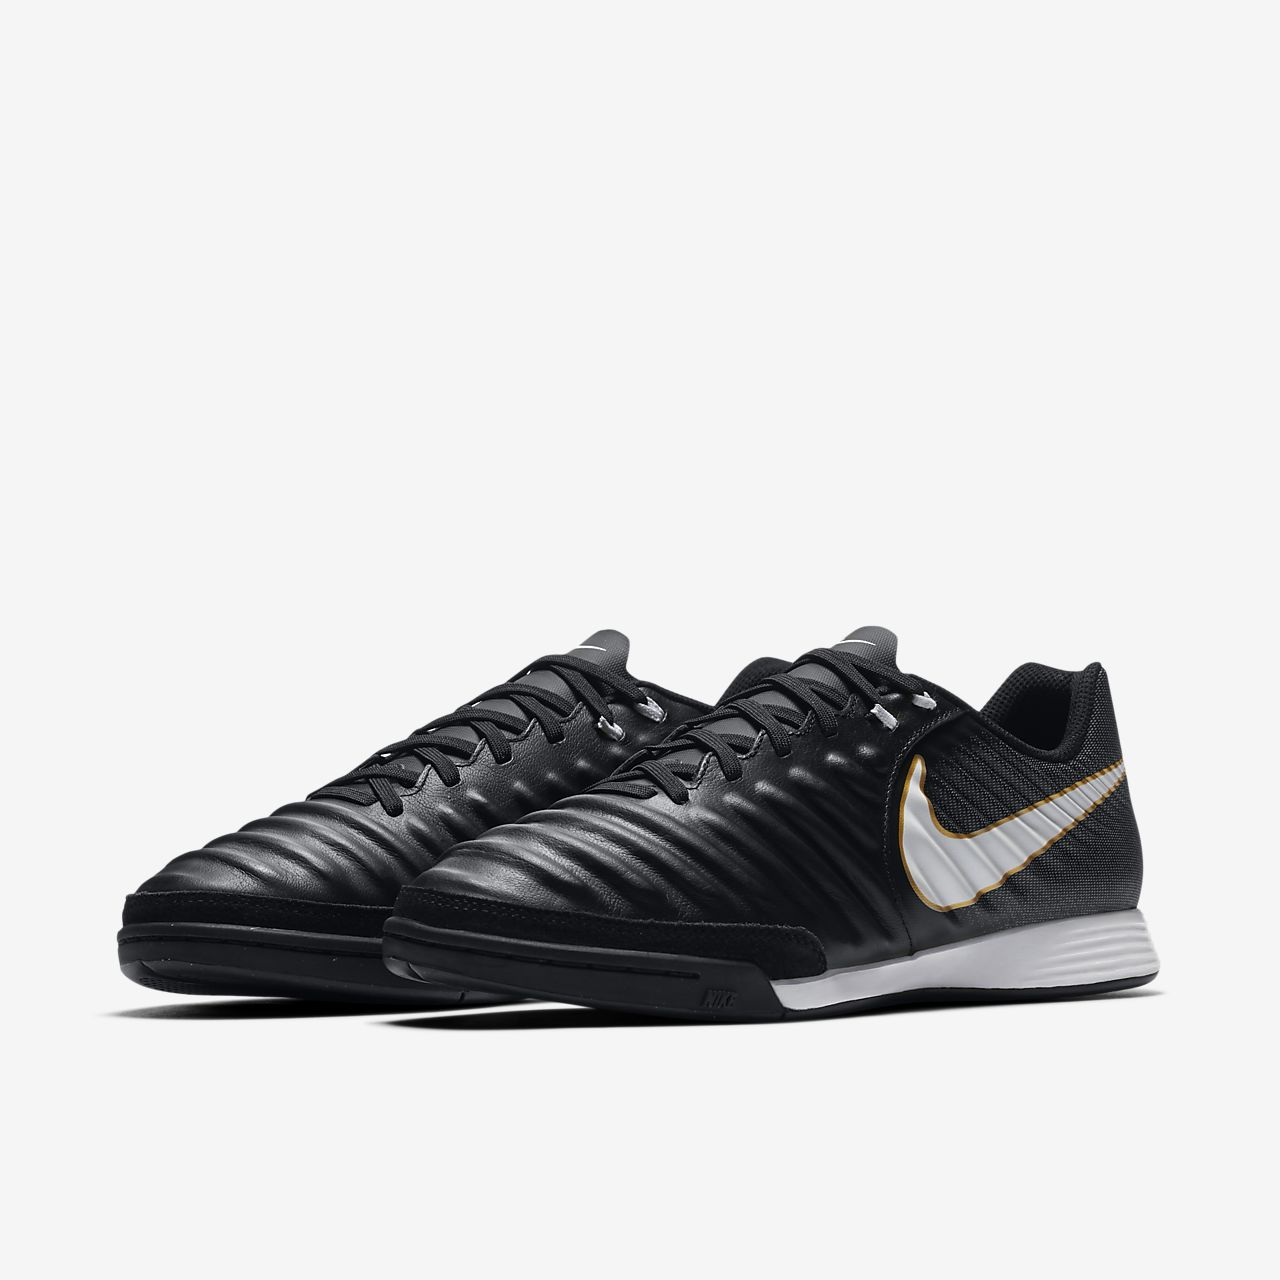 Nike TiempoX Ligera IV Indoor/Court Women's Football Shoes Black/White vK1530T